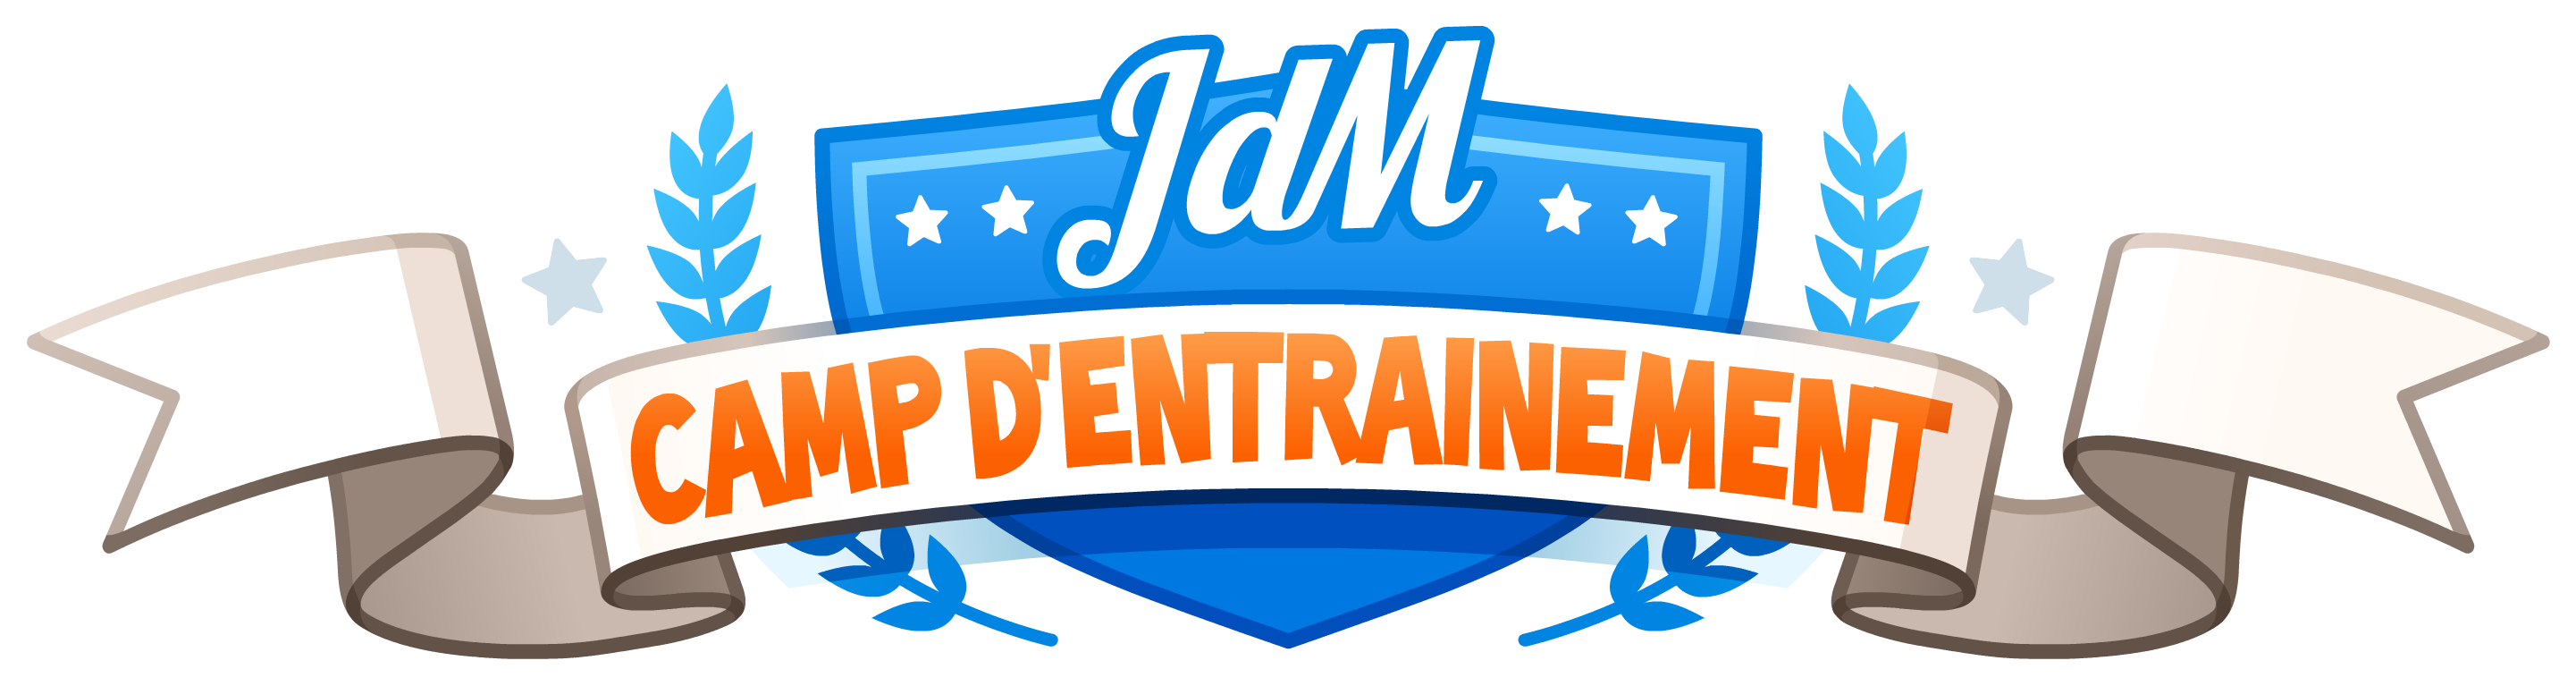 Camp_dentrainement_logo